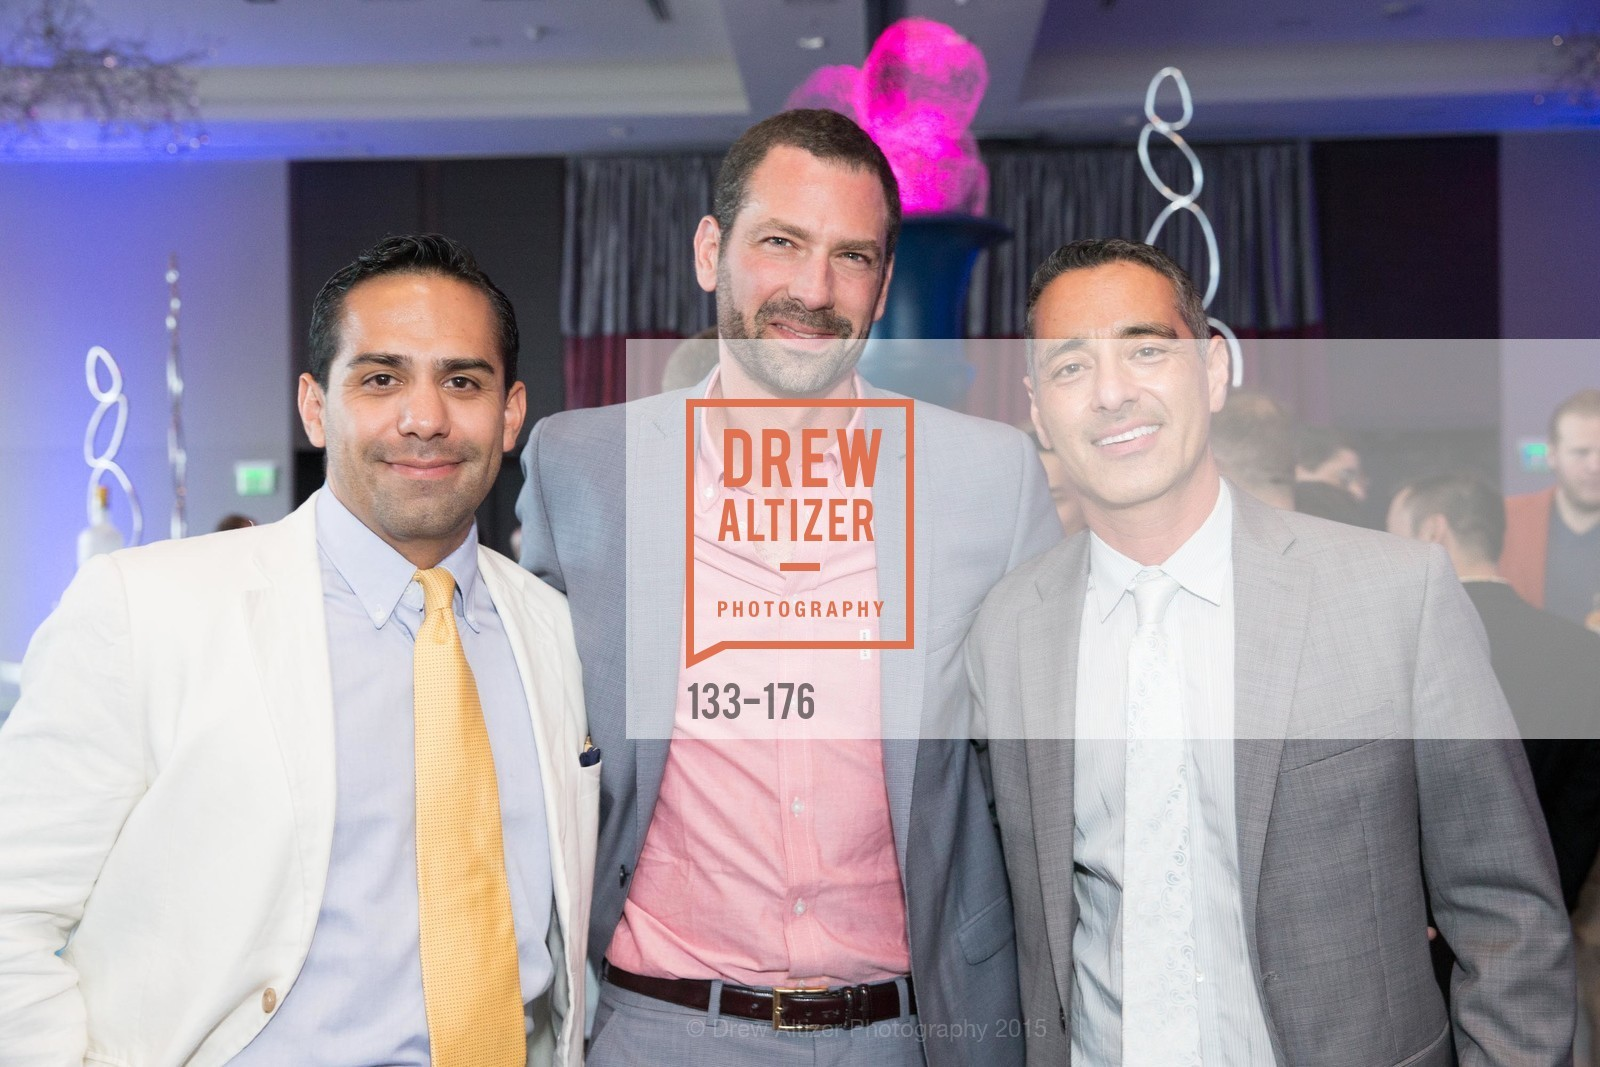 Matias Acosta, Brian Pearlman, Jonathan Patrizio, VIP Pride Celebration 2015, St. Regis, June 18th, 2015,Drew Altizer, Drew Altizer Photography, full-service agency, private events, San Francisco photographer, photographer california